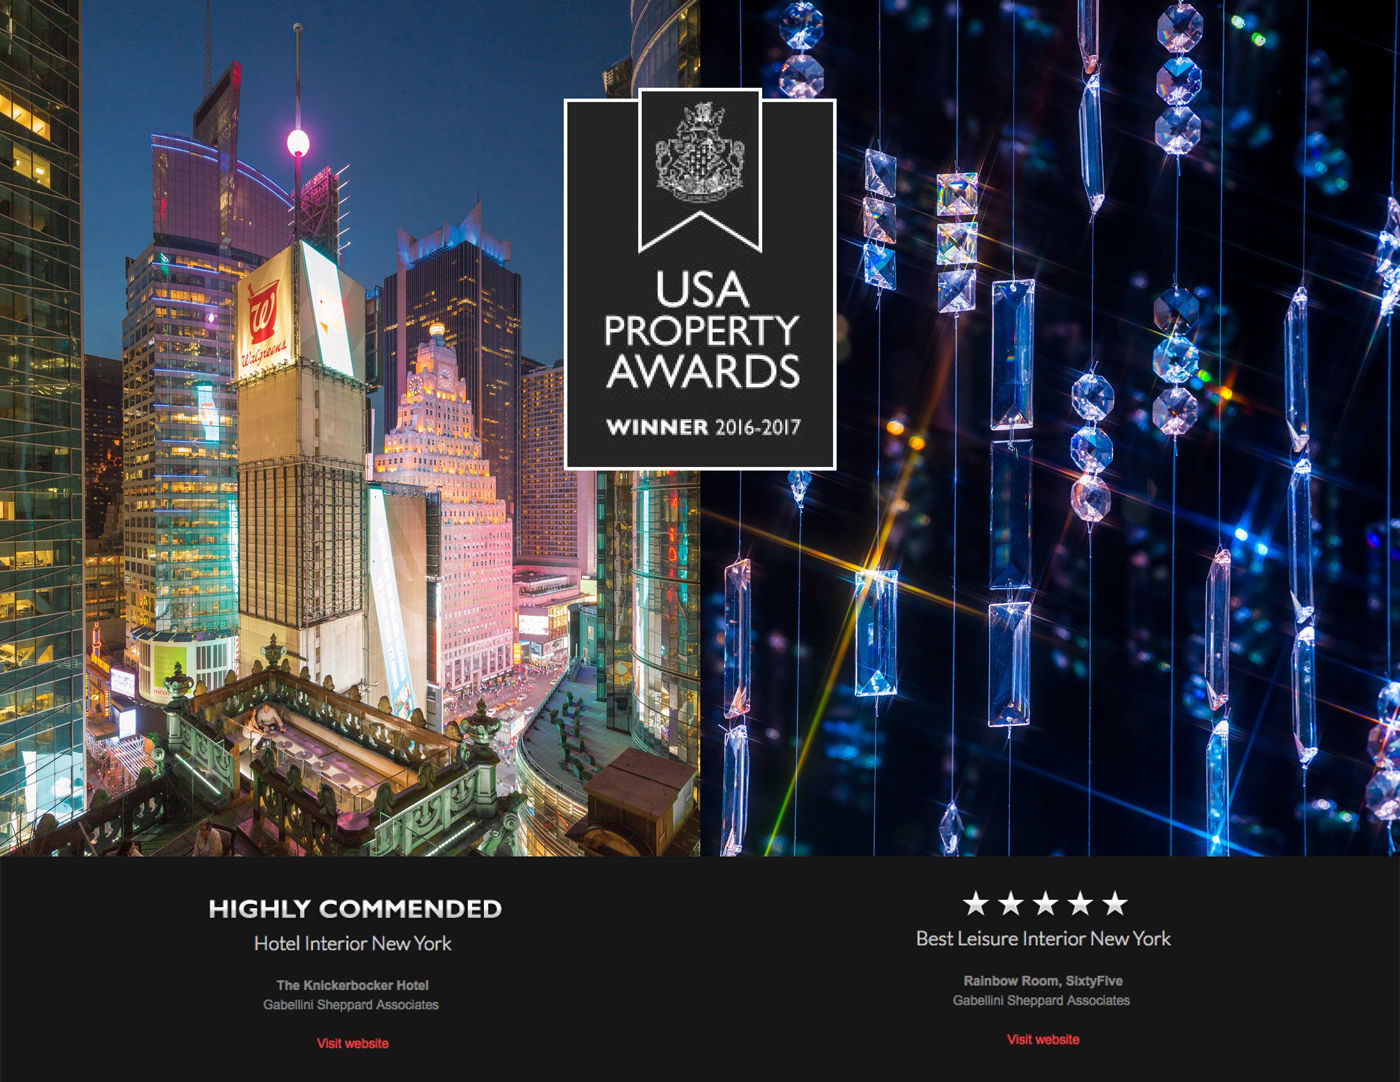 America's Property Award Announcements